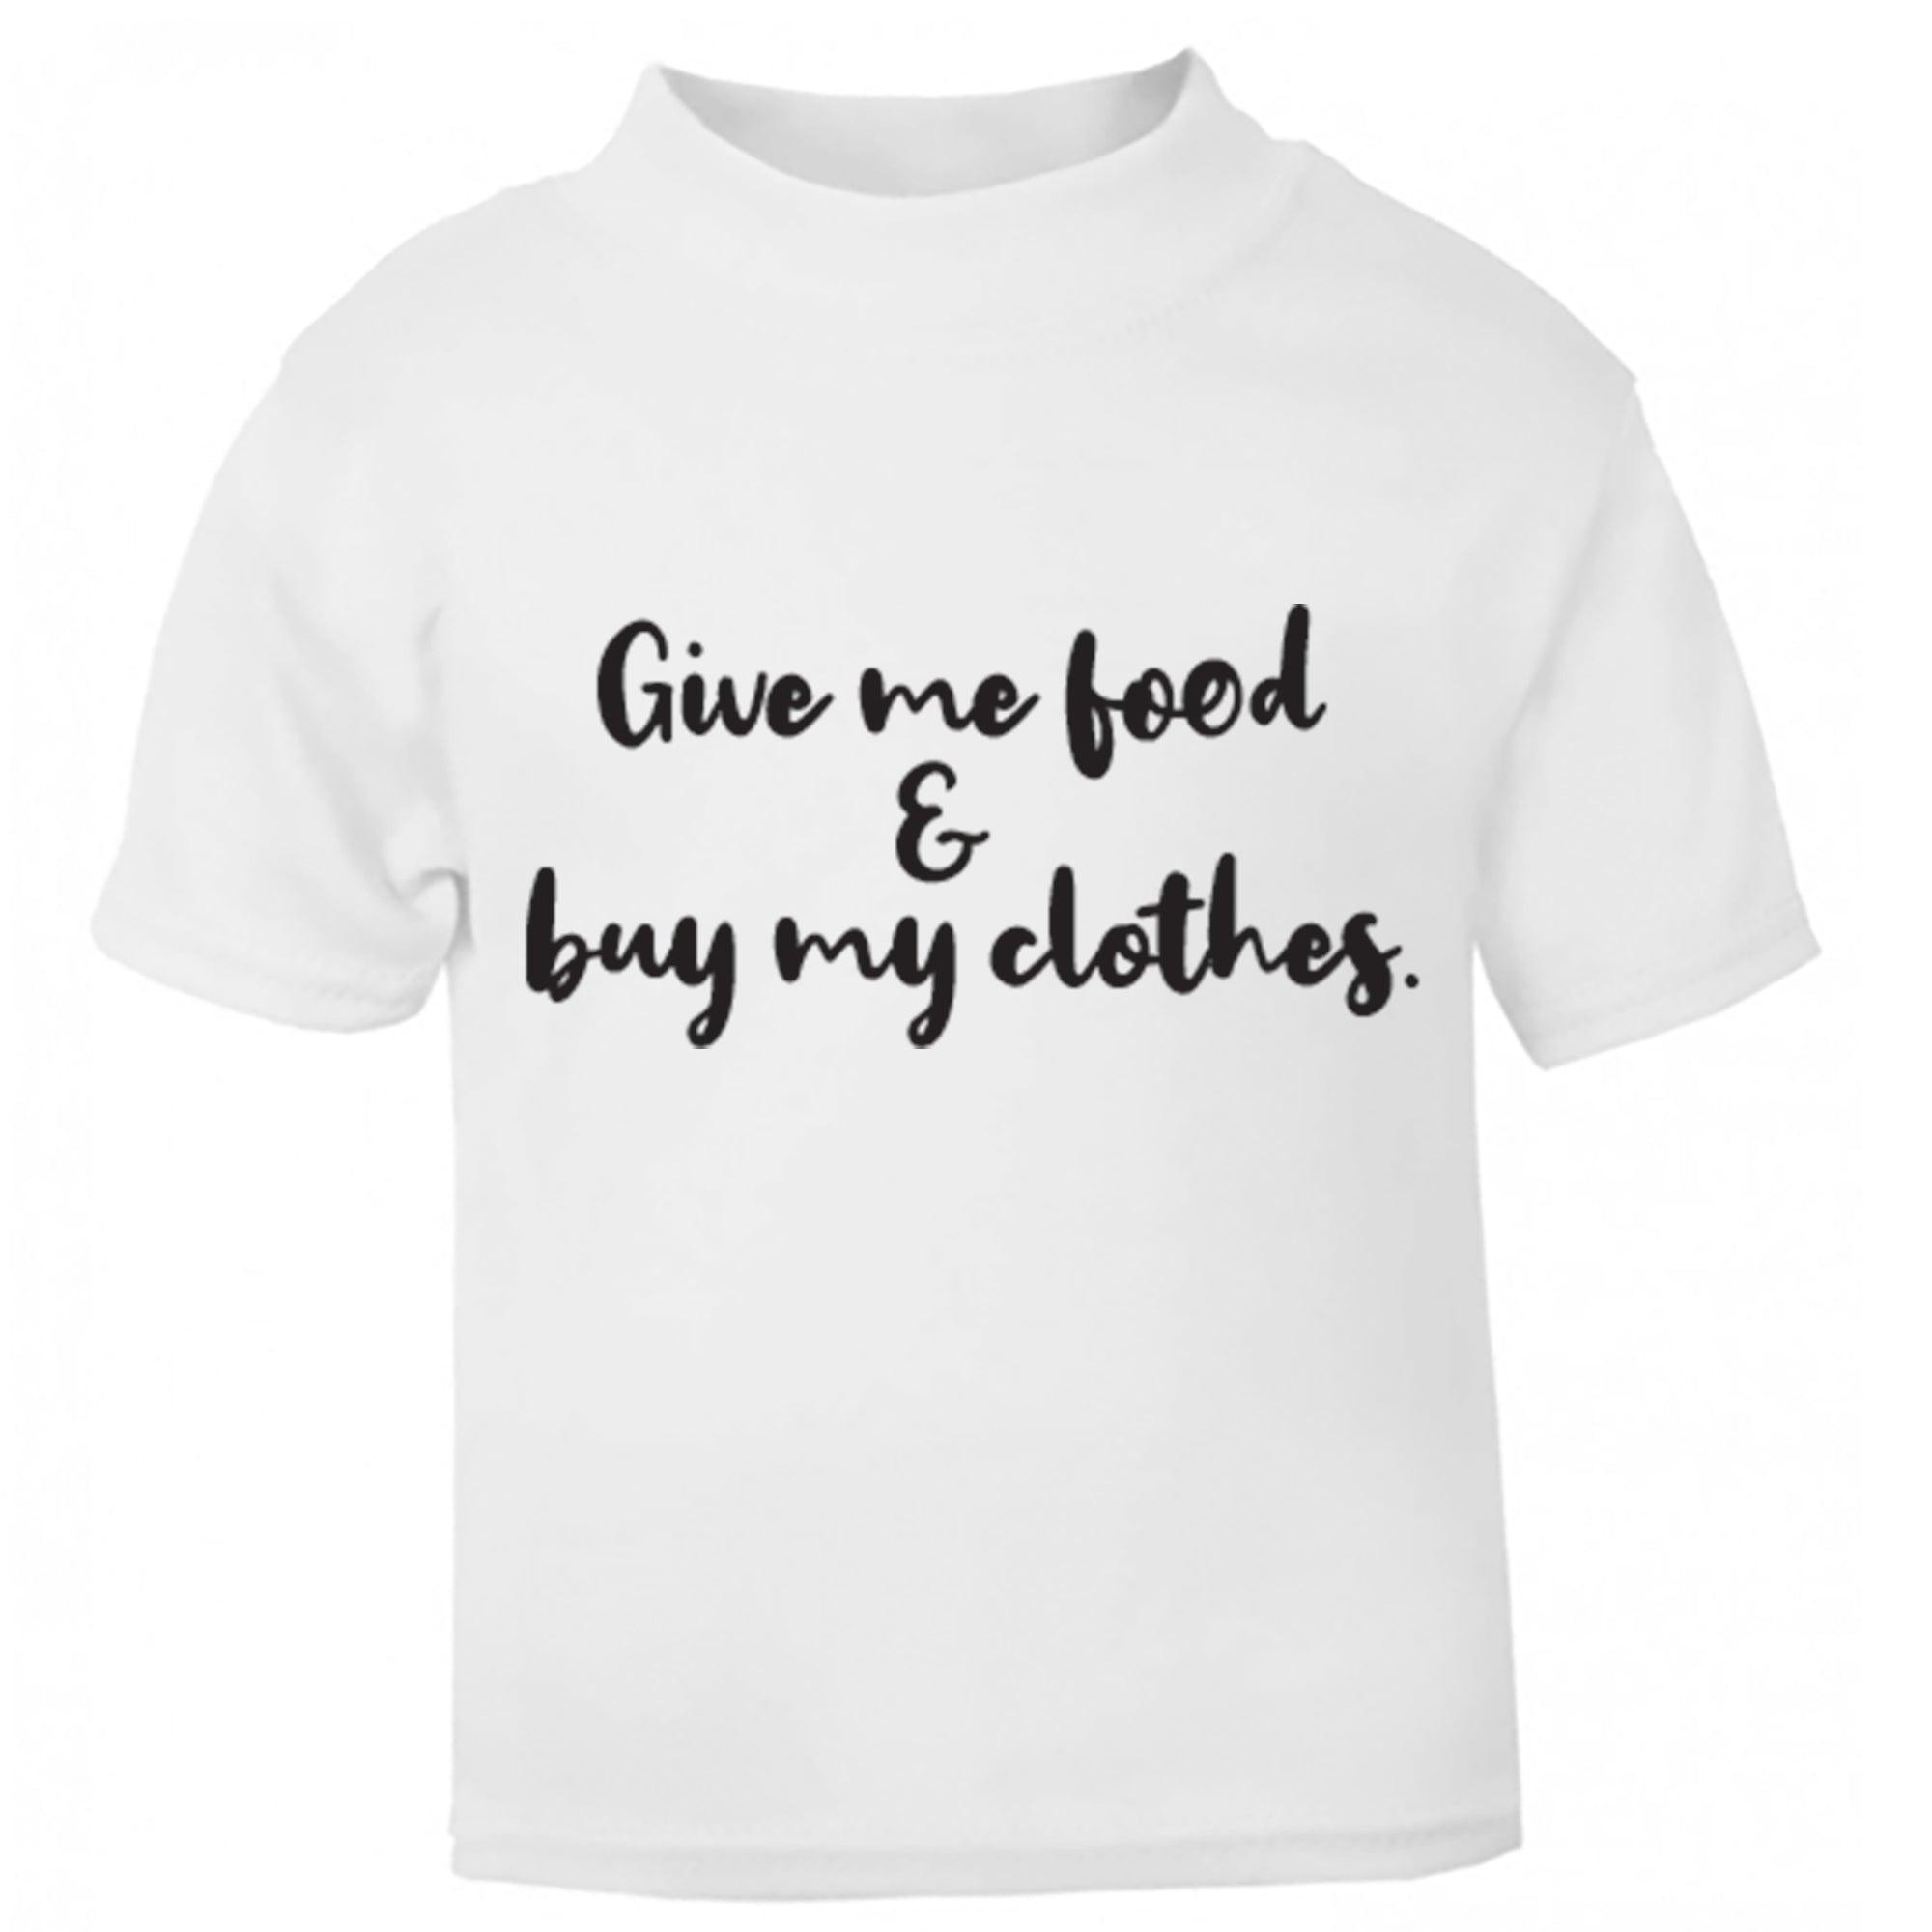 Give Me Food & Buy My Clothes Childrens Ages 3/4-12/14 Unisex Fit T-Shirt S0349 - Illustrated Identity Ltd.